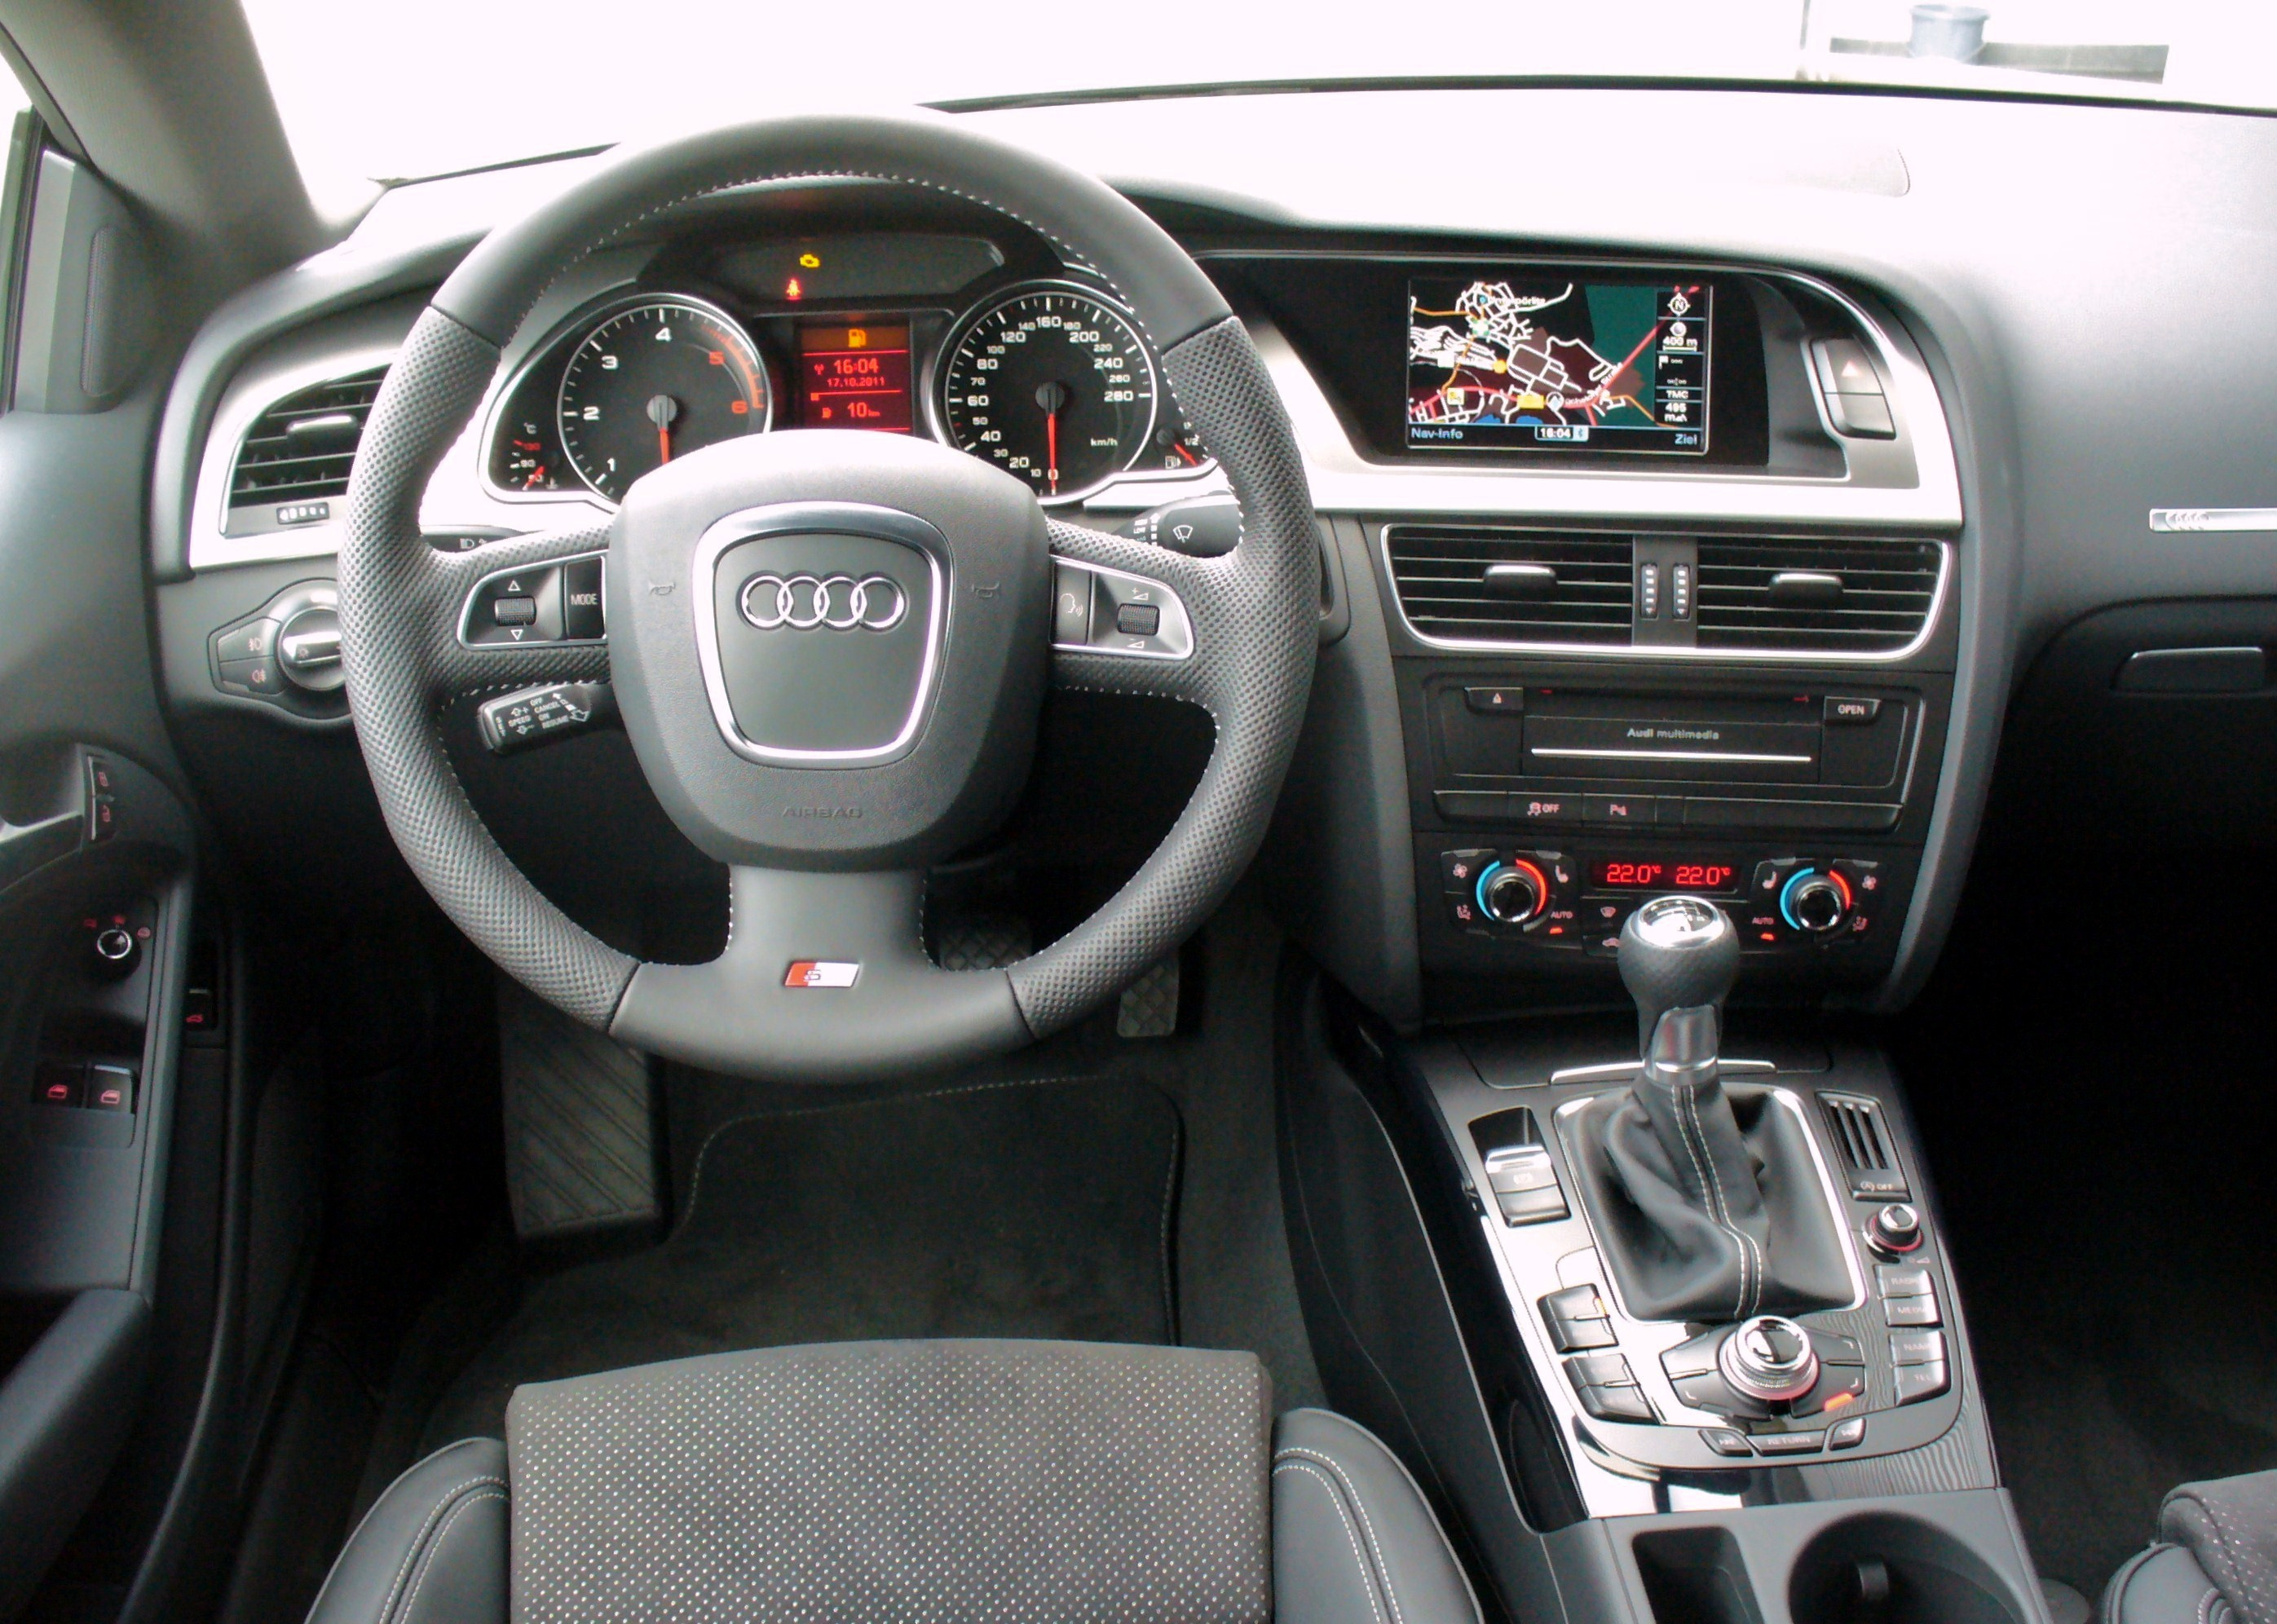 https://upload.wikimedia.org/wikipedia/commons/4/45/Audi_A5_Coup%C3%A9_S_line_2.0_TDI_Teakbraun_Interieur.JPG